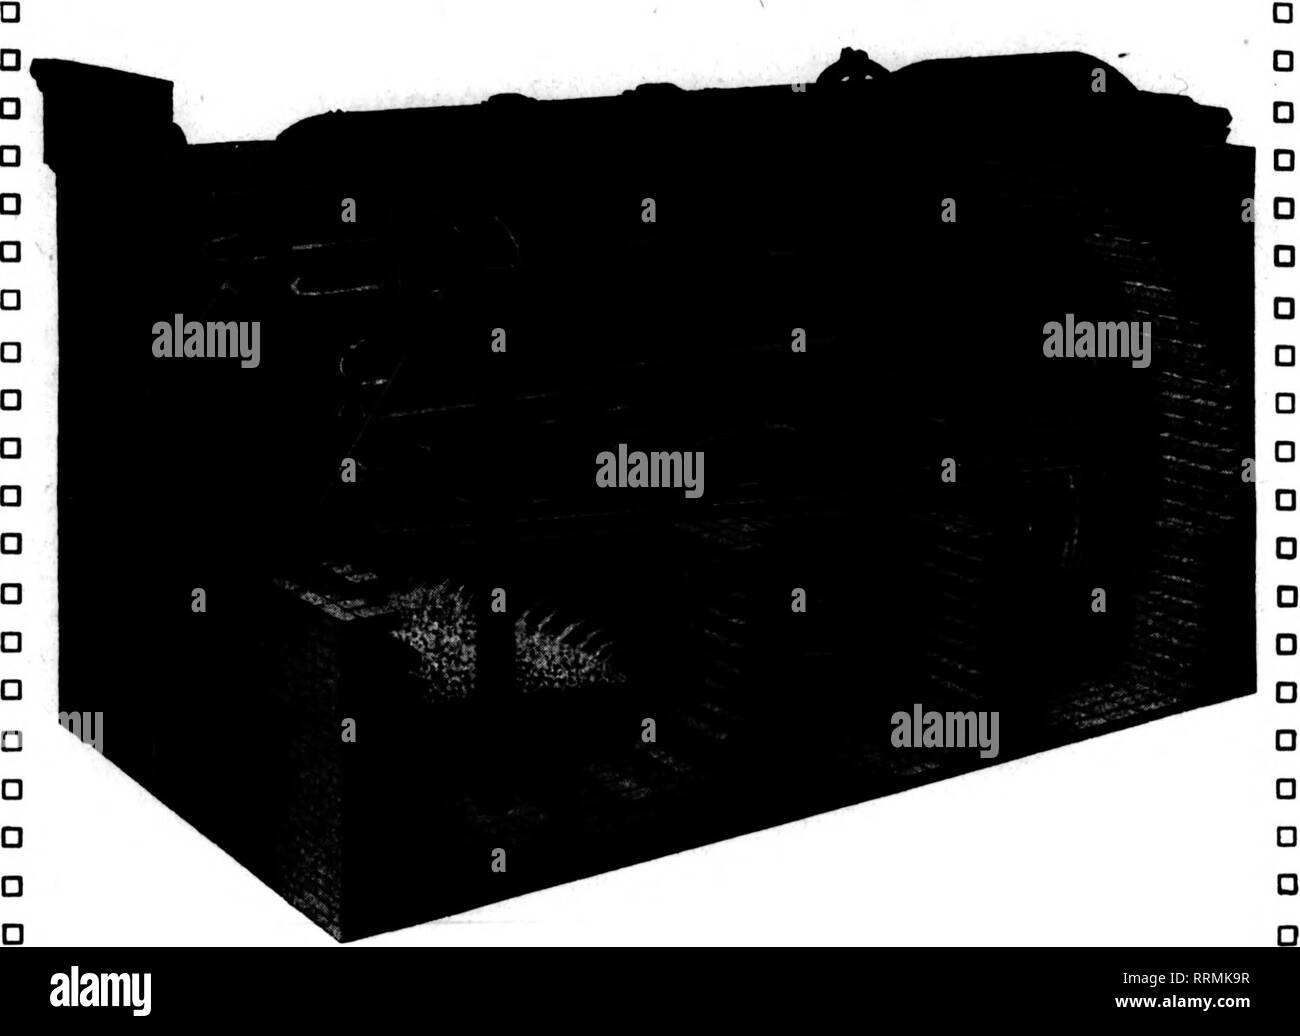 1918 ' Black and White Stock Photos & Images - Page 18 - Alamy